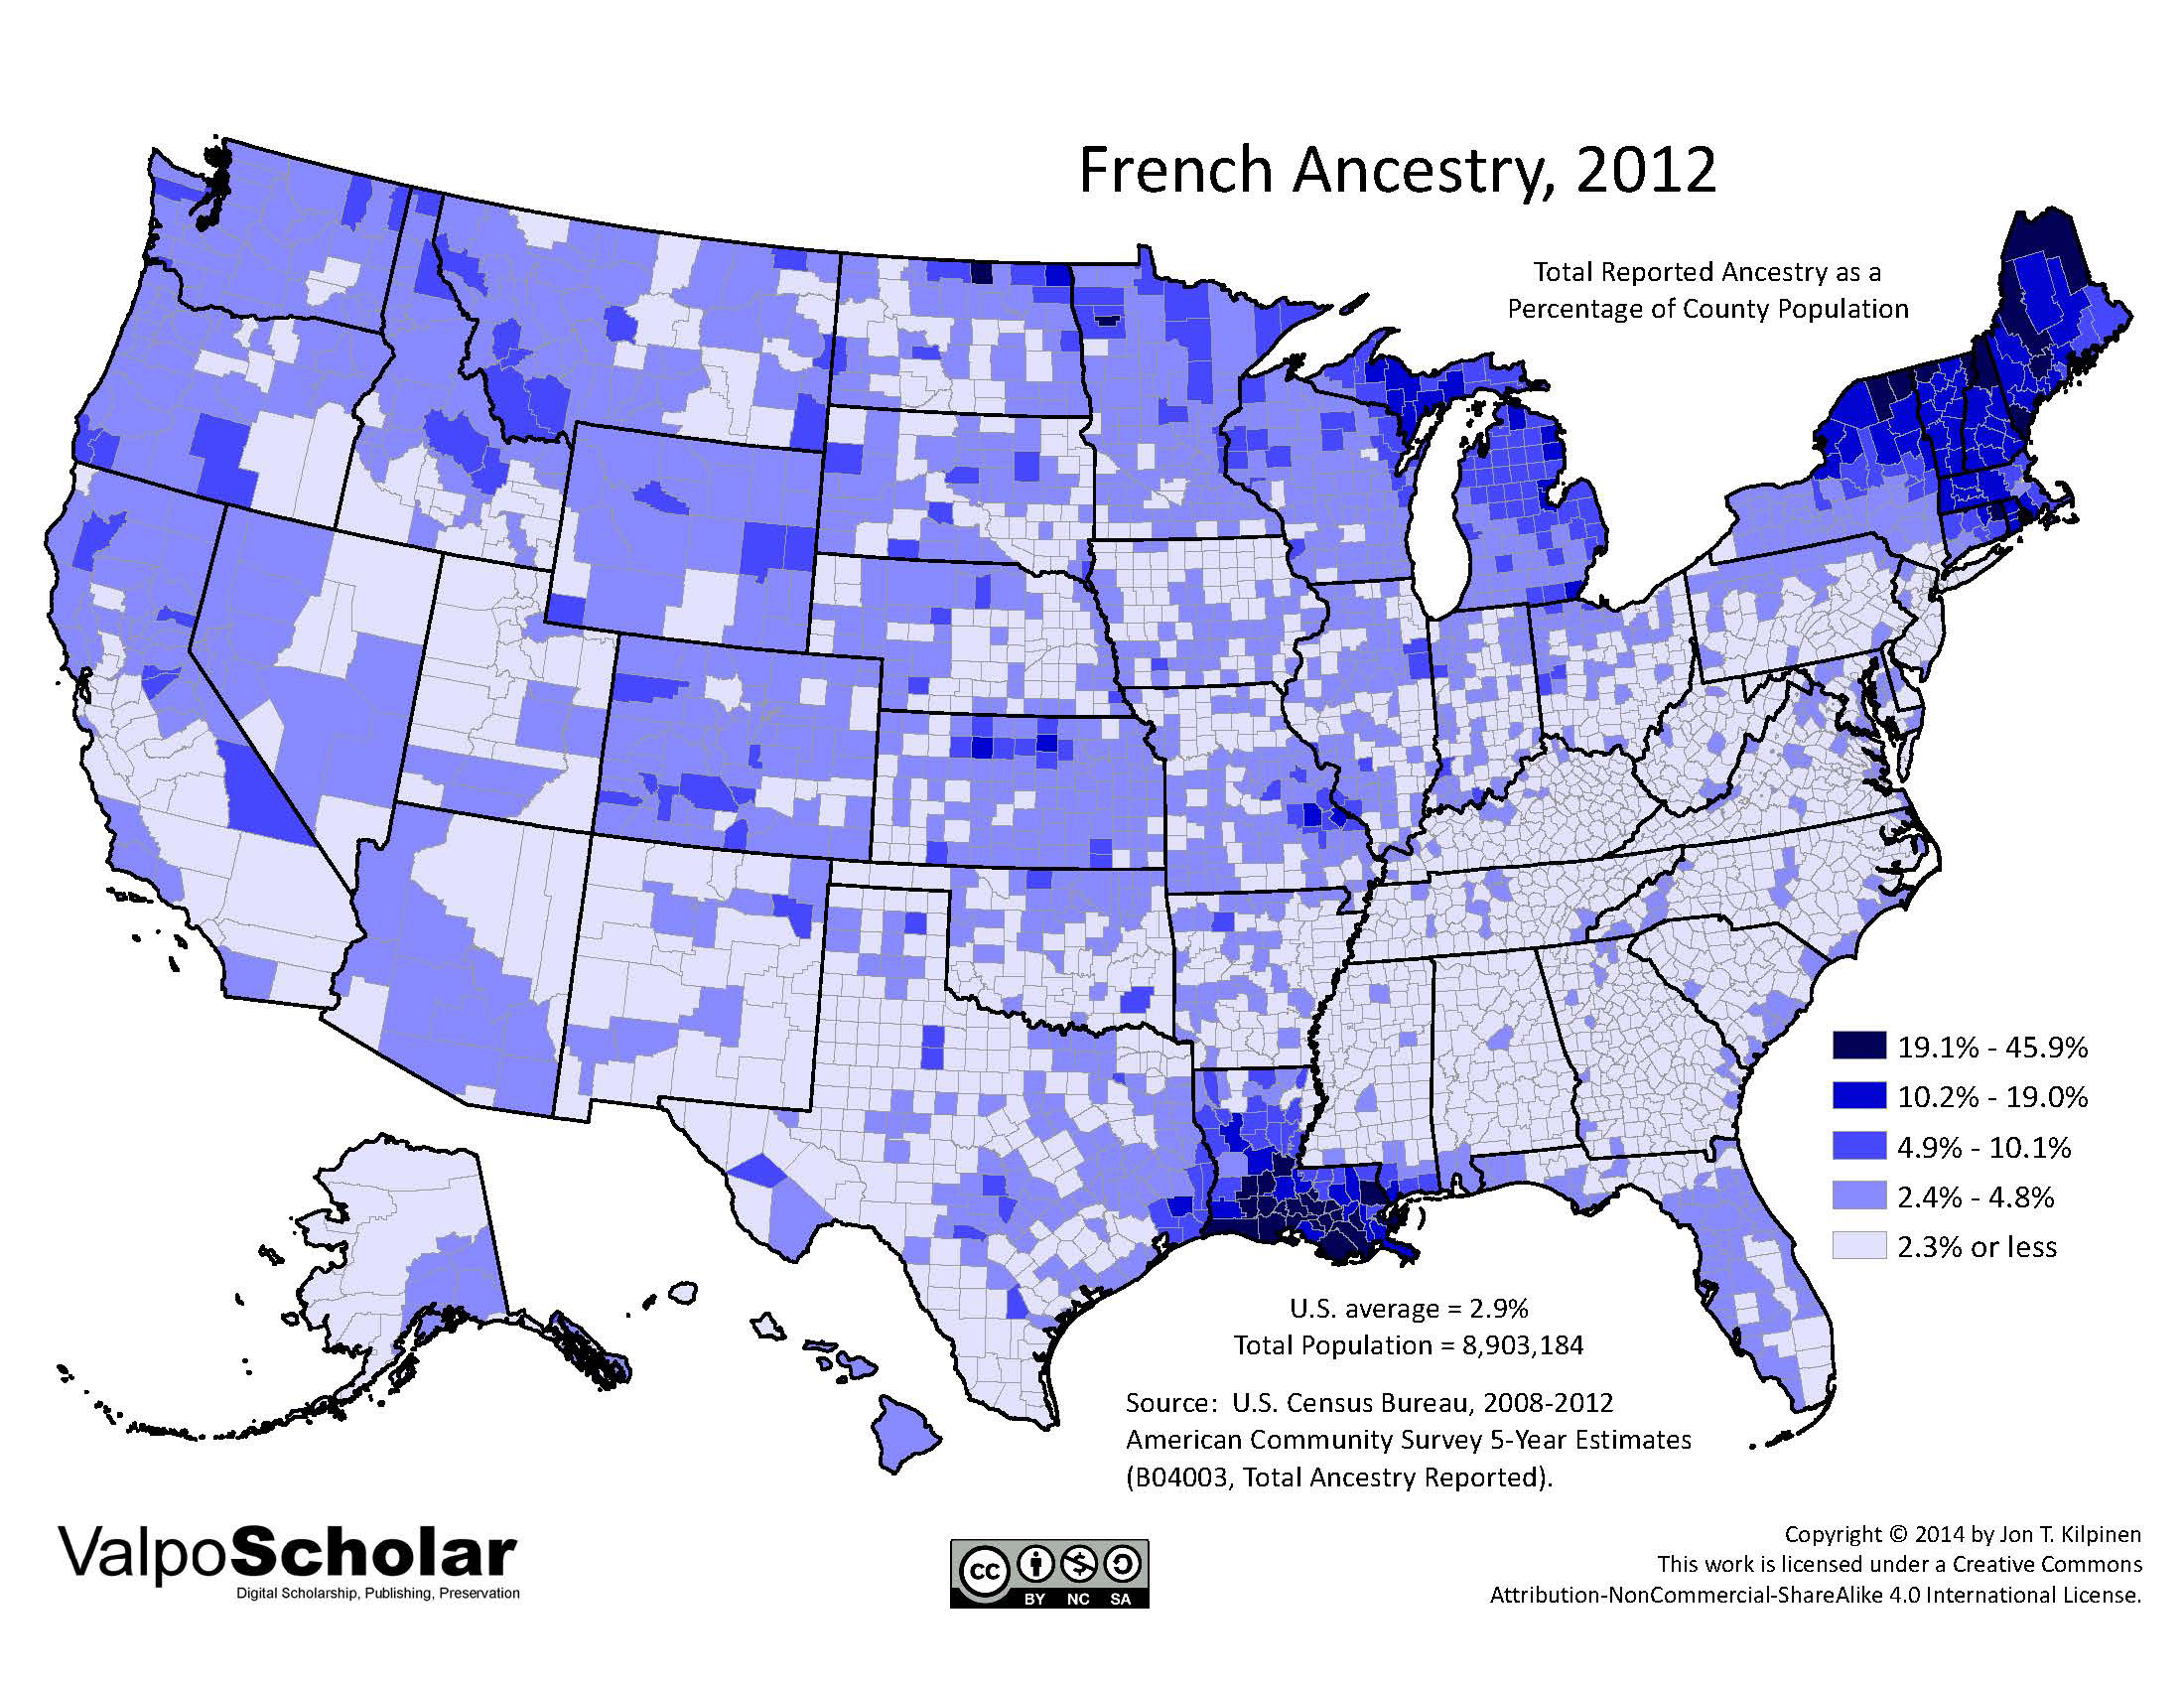 French Ancestry By Jon T Kilpinen - United states map in french